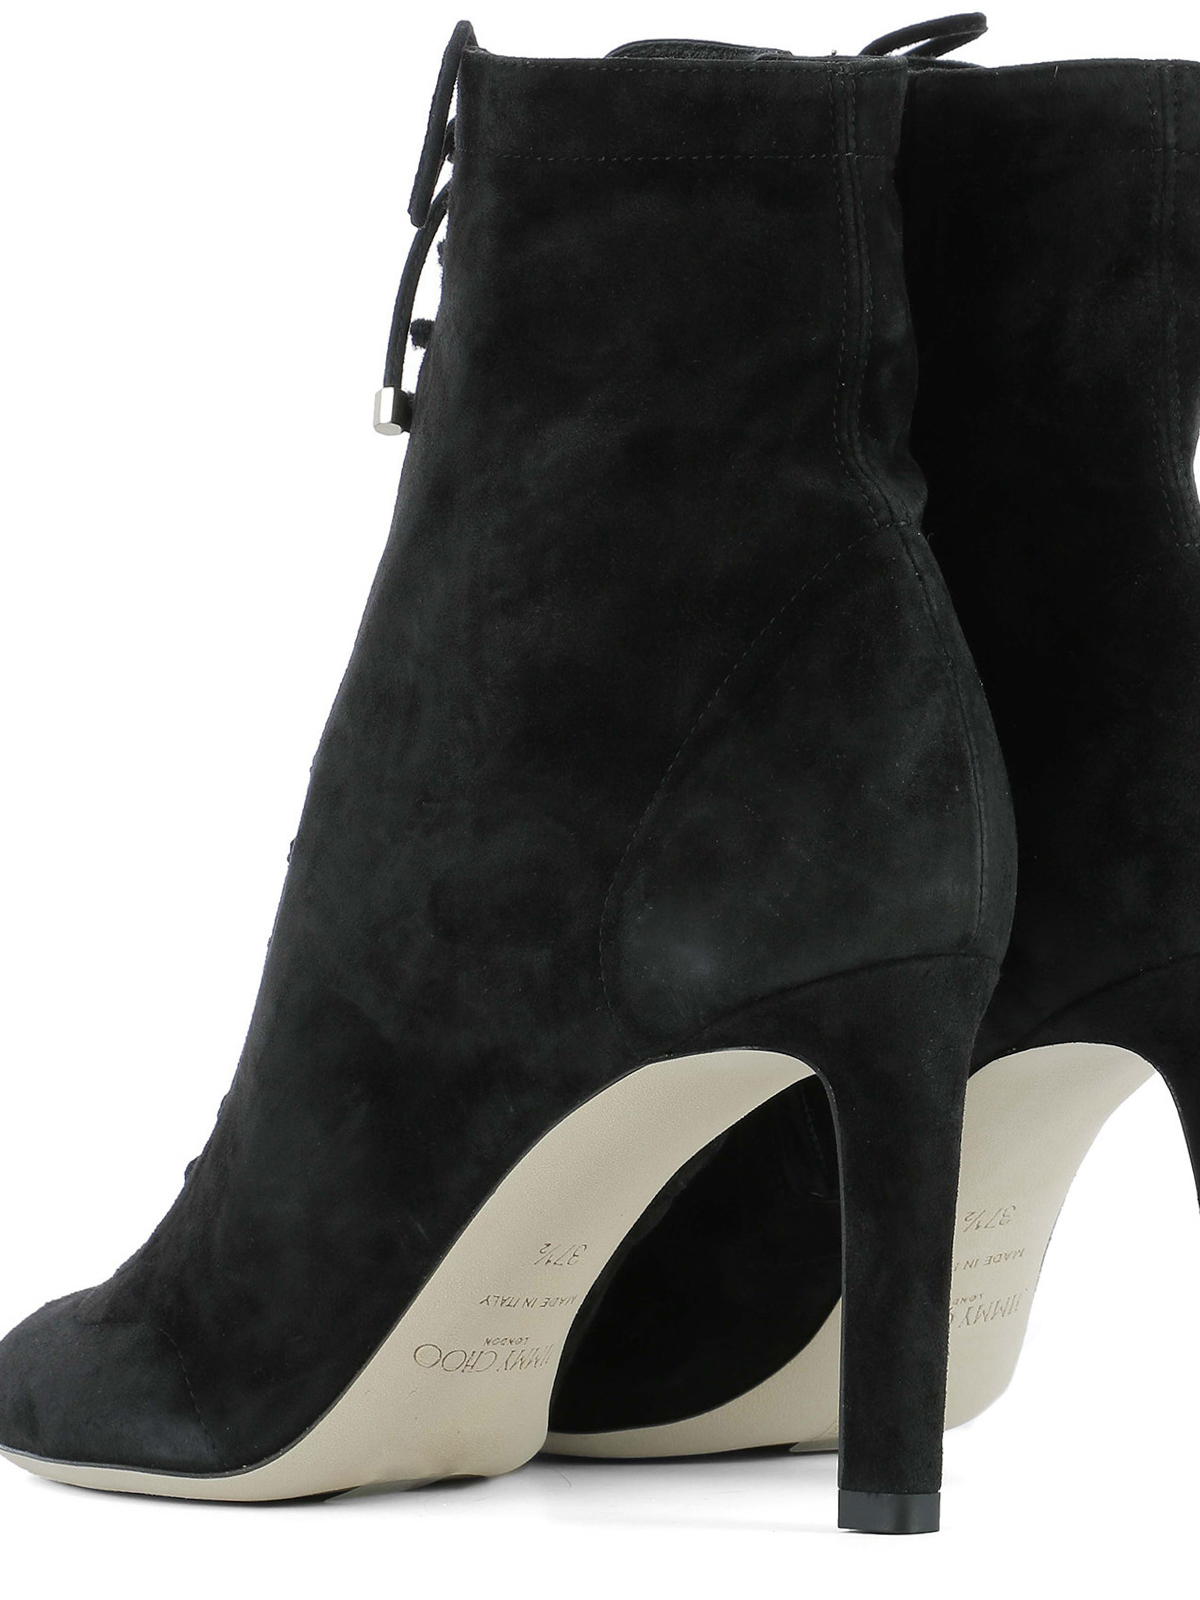 af8e056d970 Jimmy Choo - Daize lace-up suede booties - ankle boots - DAIZE 85 ...